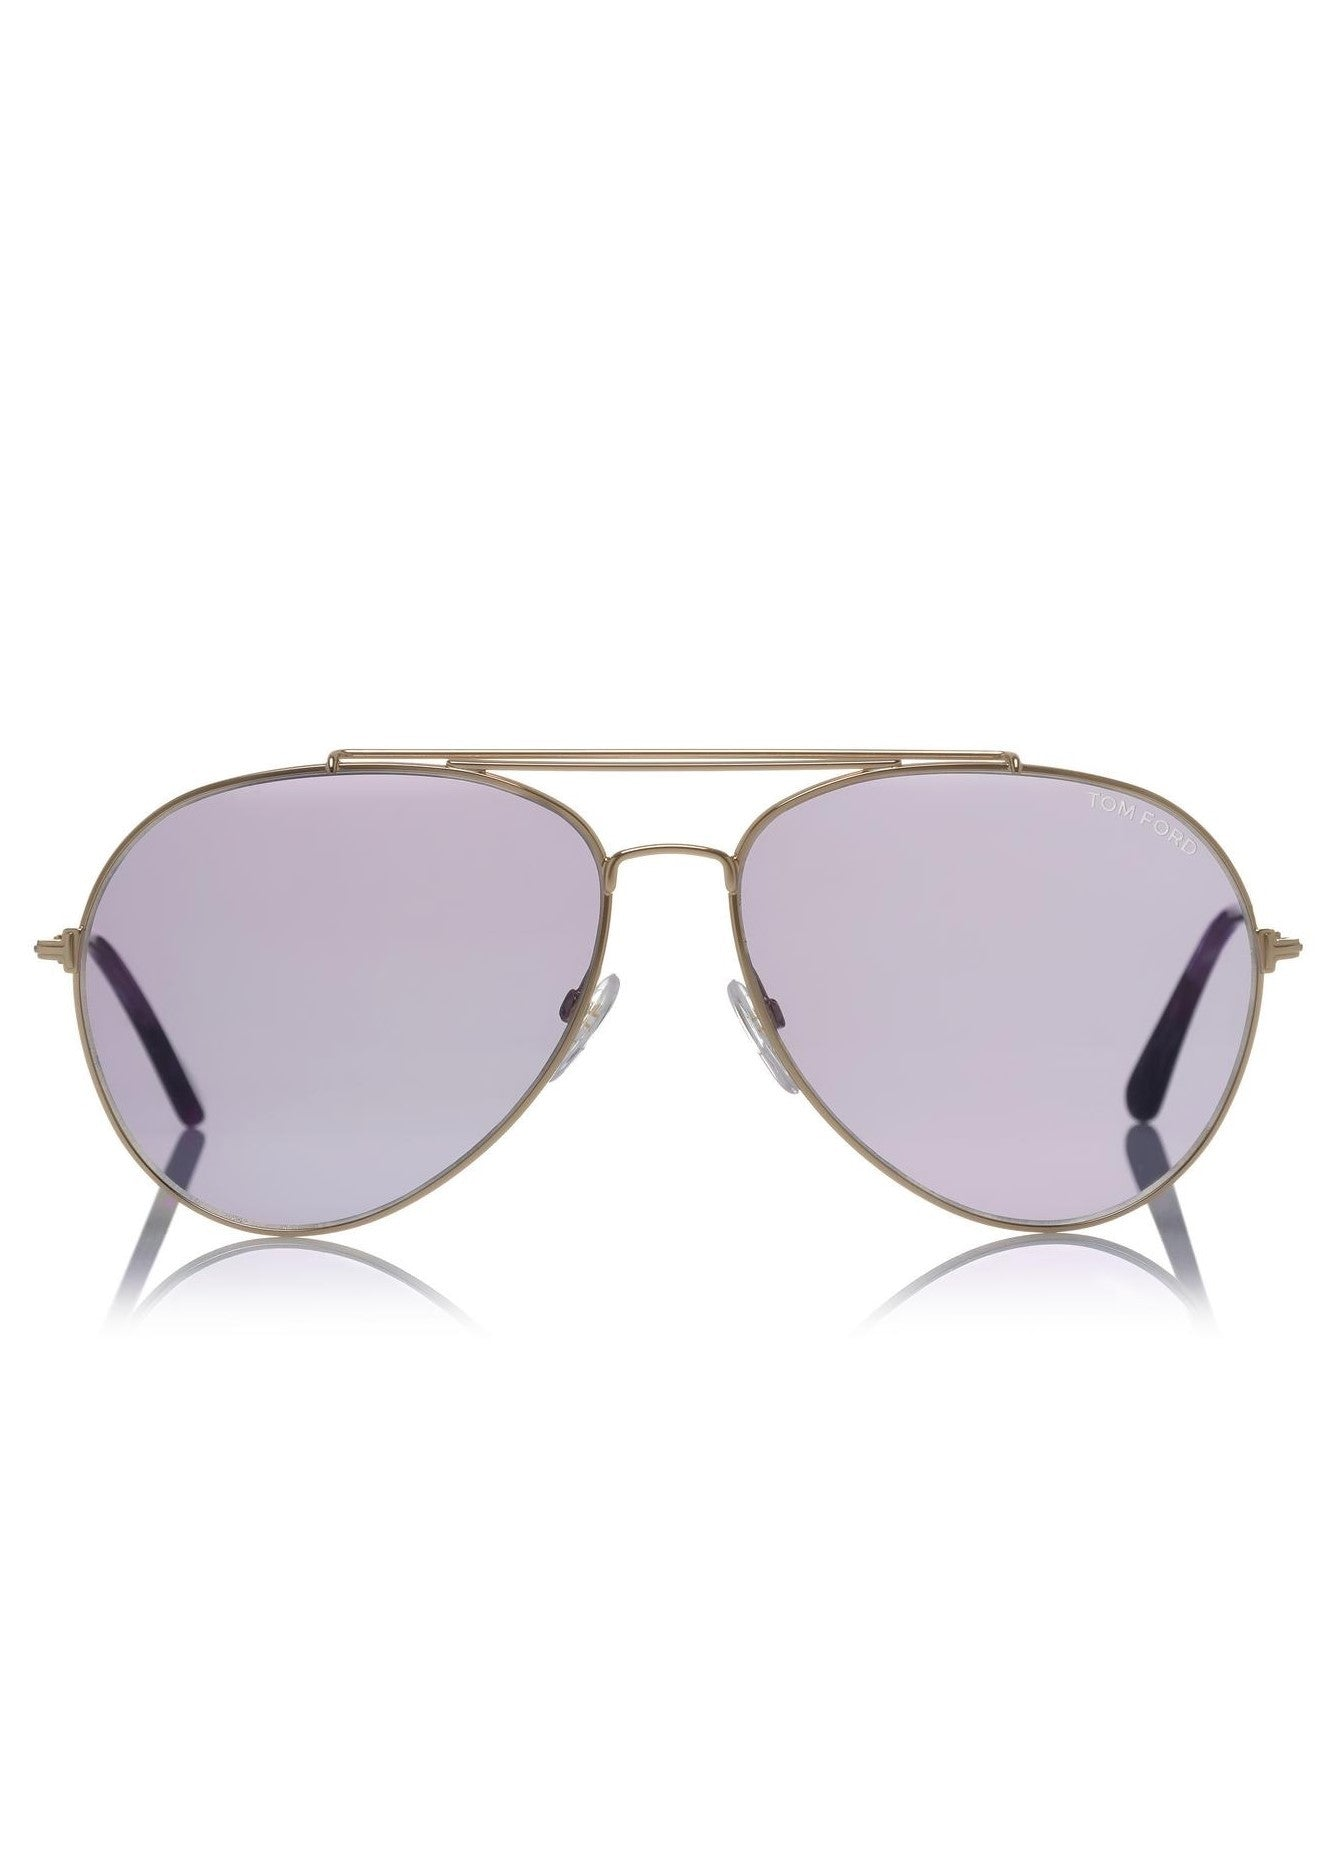 Tom Ford indiana aviator sunglasses purple